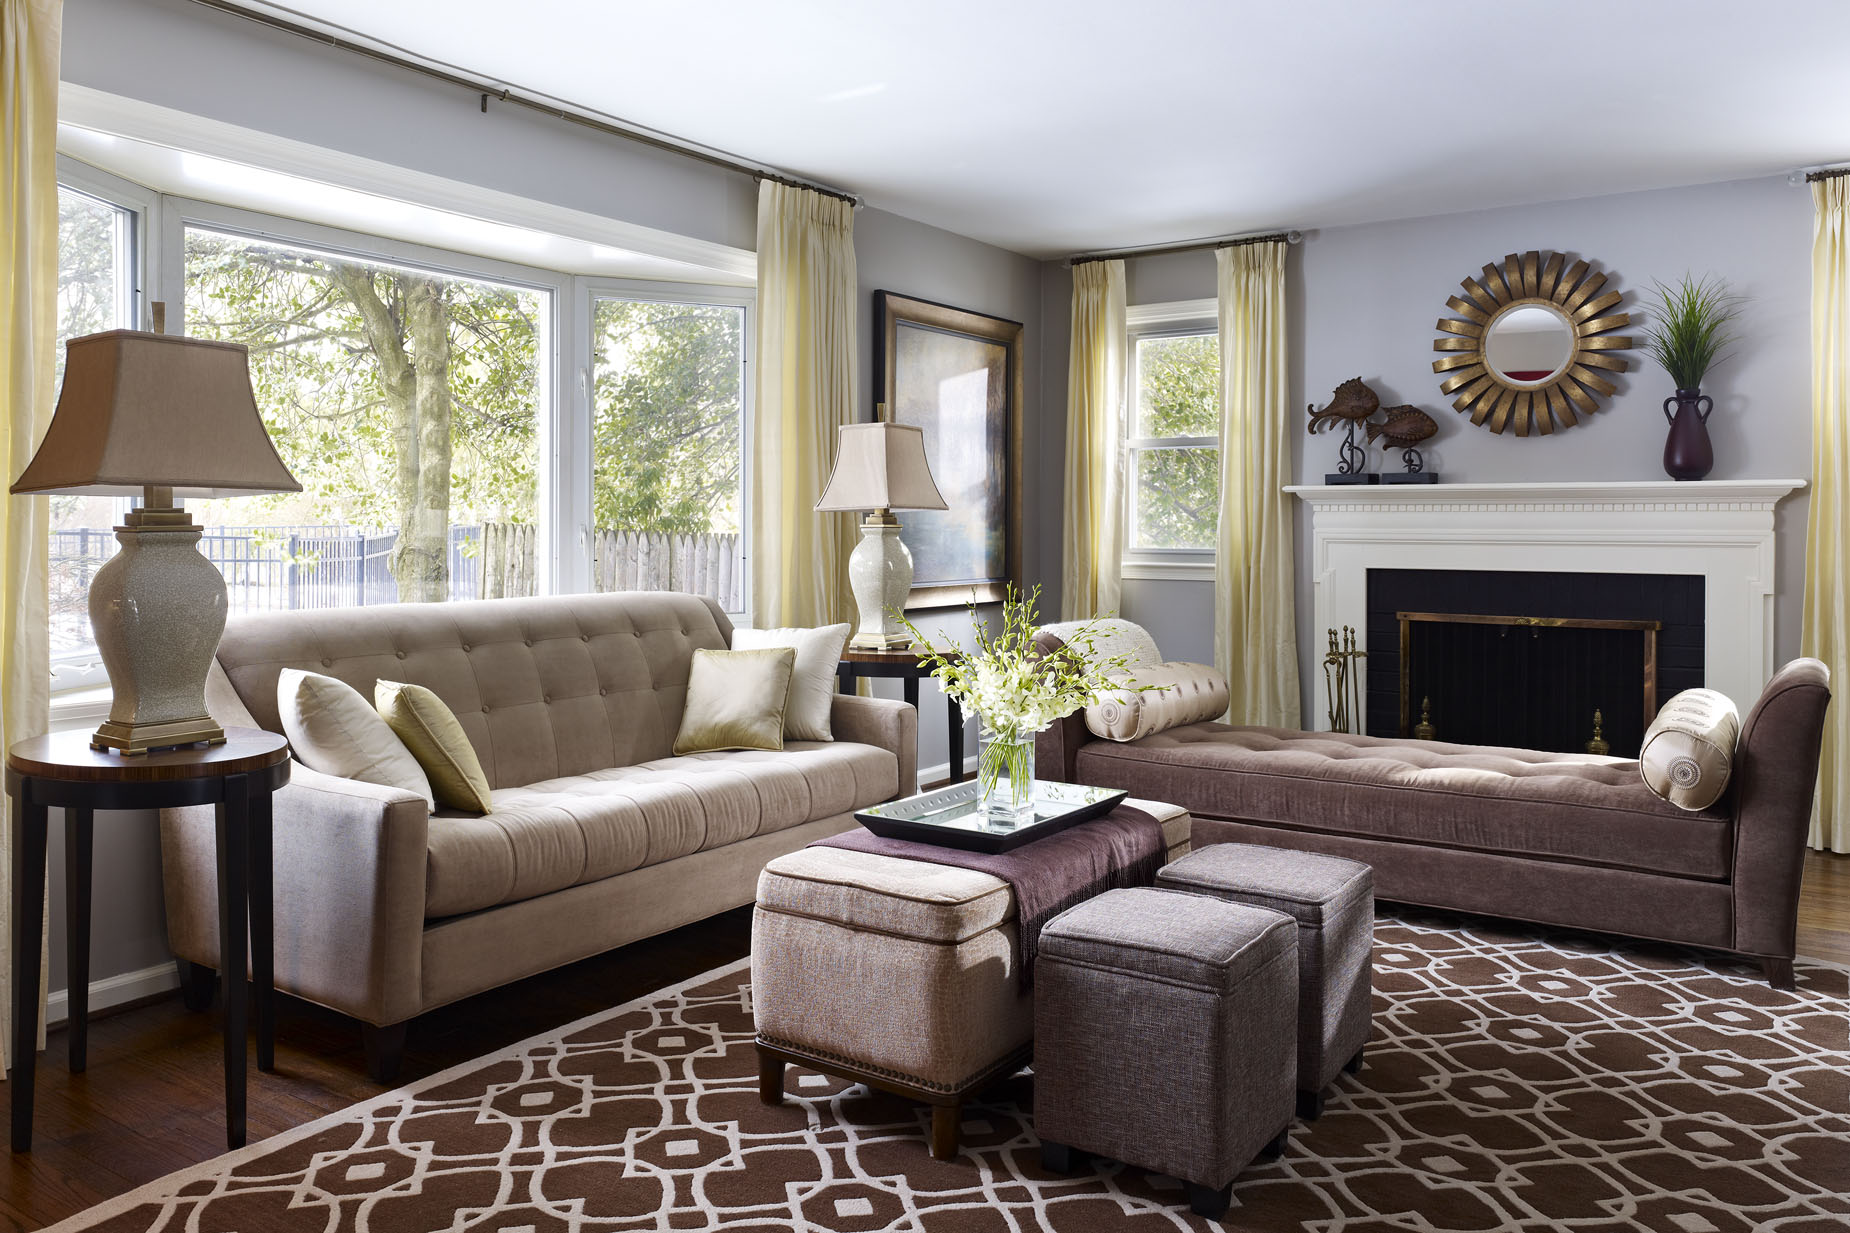 Clean Lines U2013 Class And Sophistication Abound In This Tastefully Designed  Transitional Living Room. Notice The Wonderful Mixtures Of Comfort,  Sparkle, Line, ...